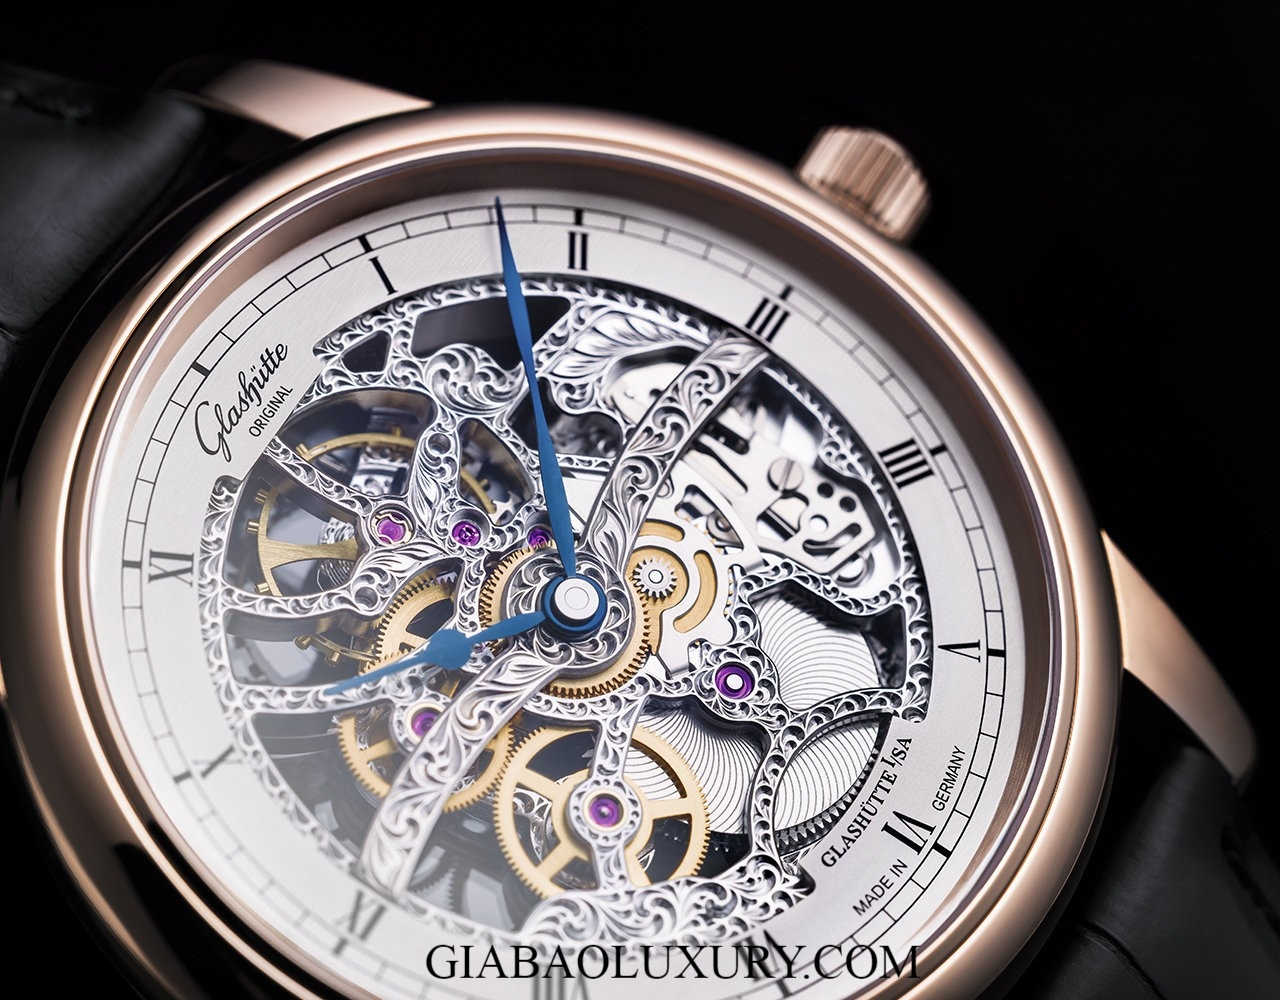 Đồng hồ Glashutte Original Senator Skeletonized 1-49-18-01-05-30